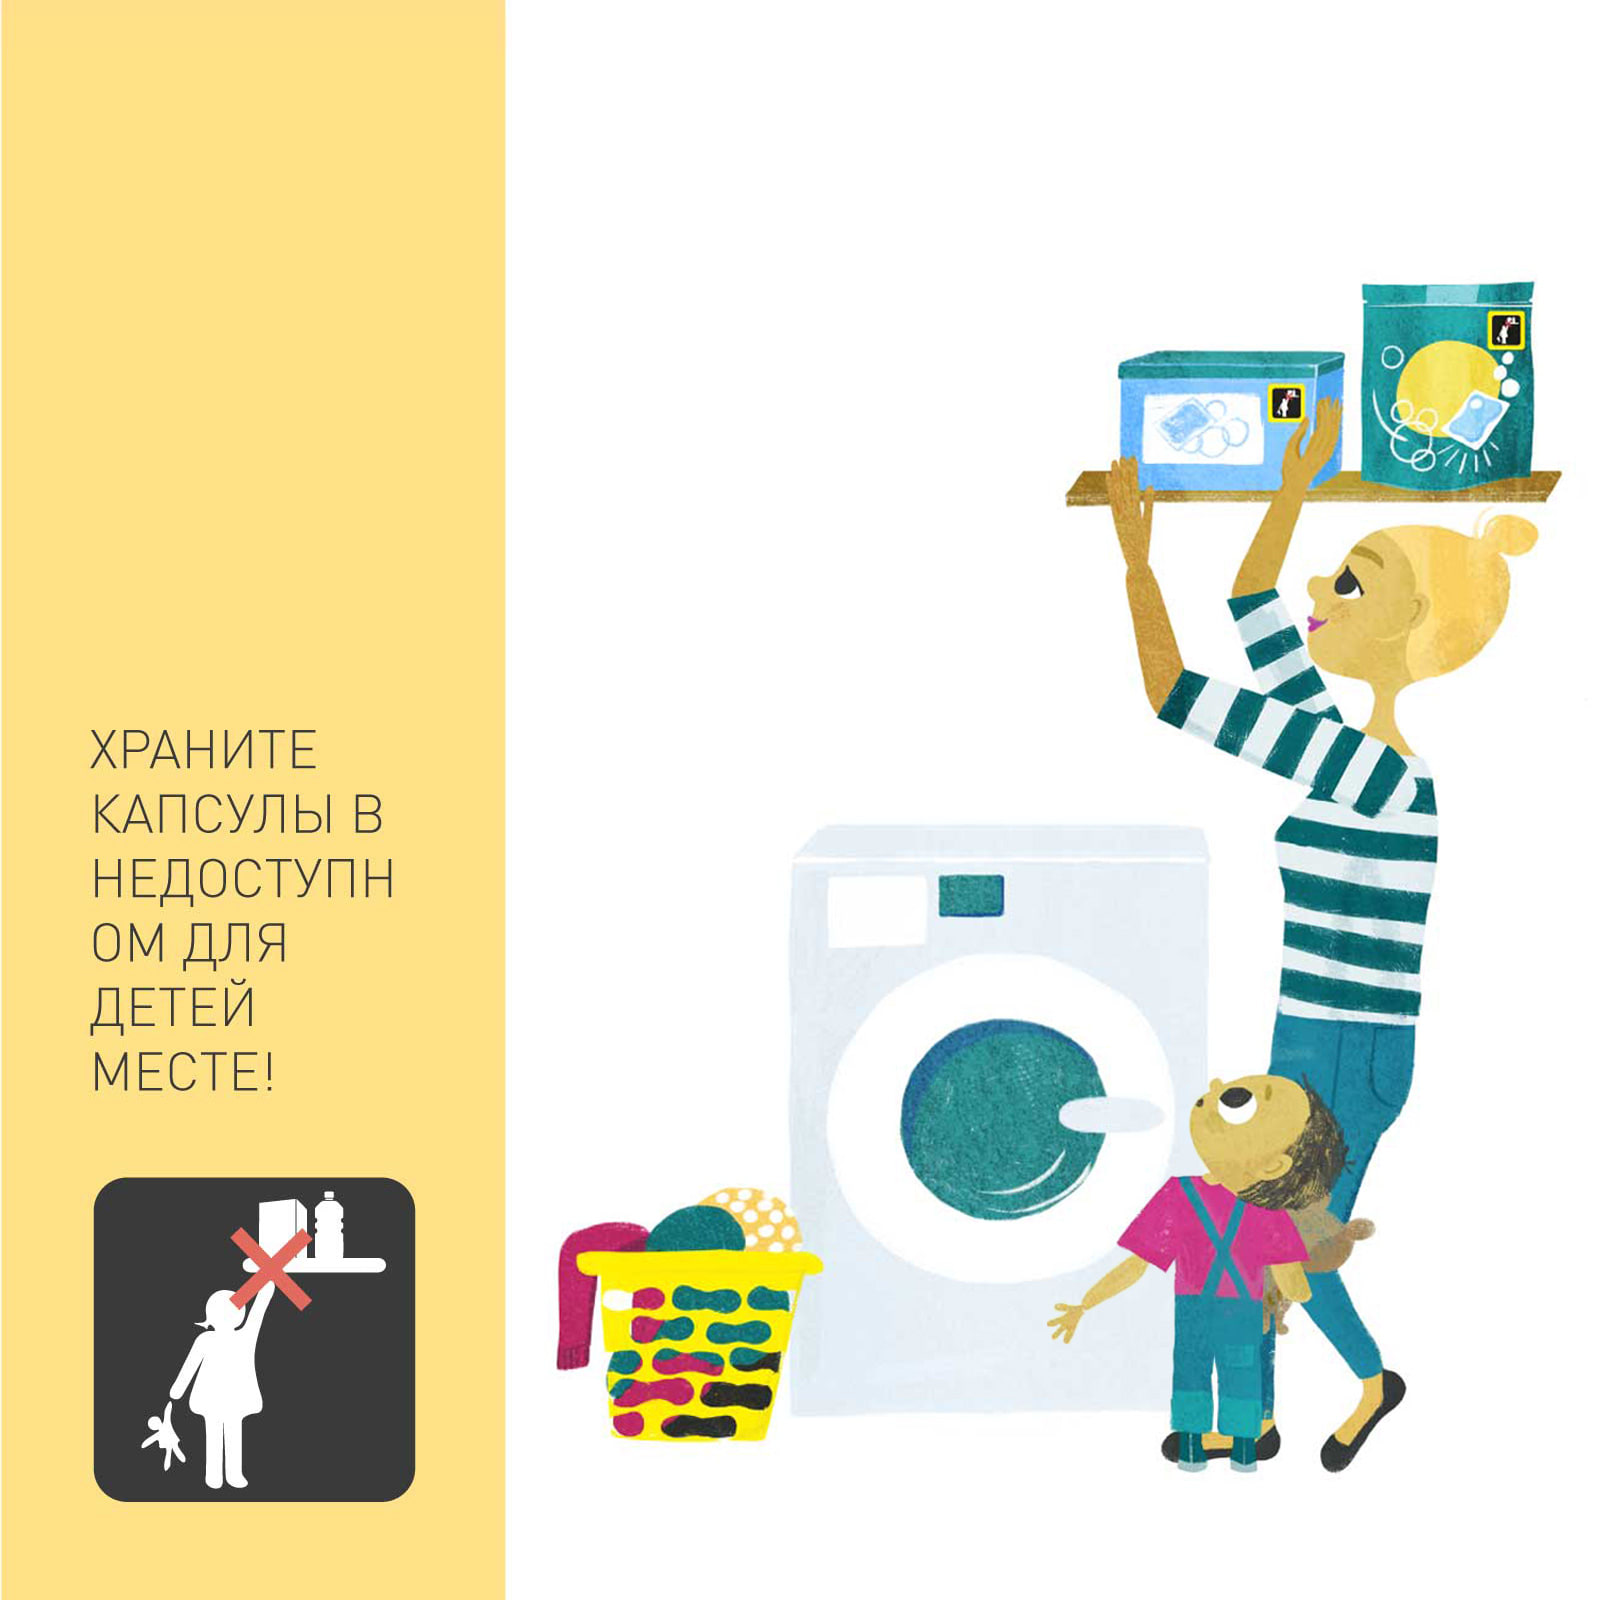 AISE-KCFK-safe-storage-campaign_visual_russian_1600x1600